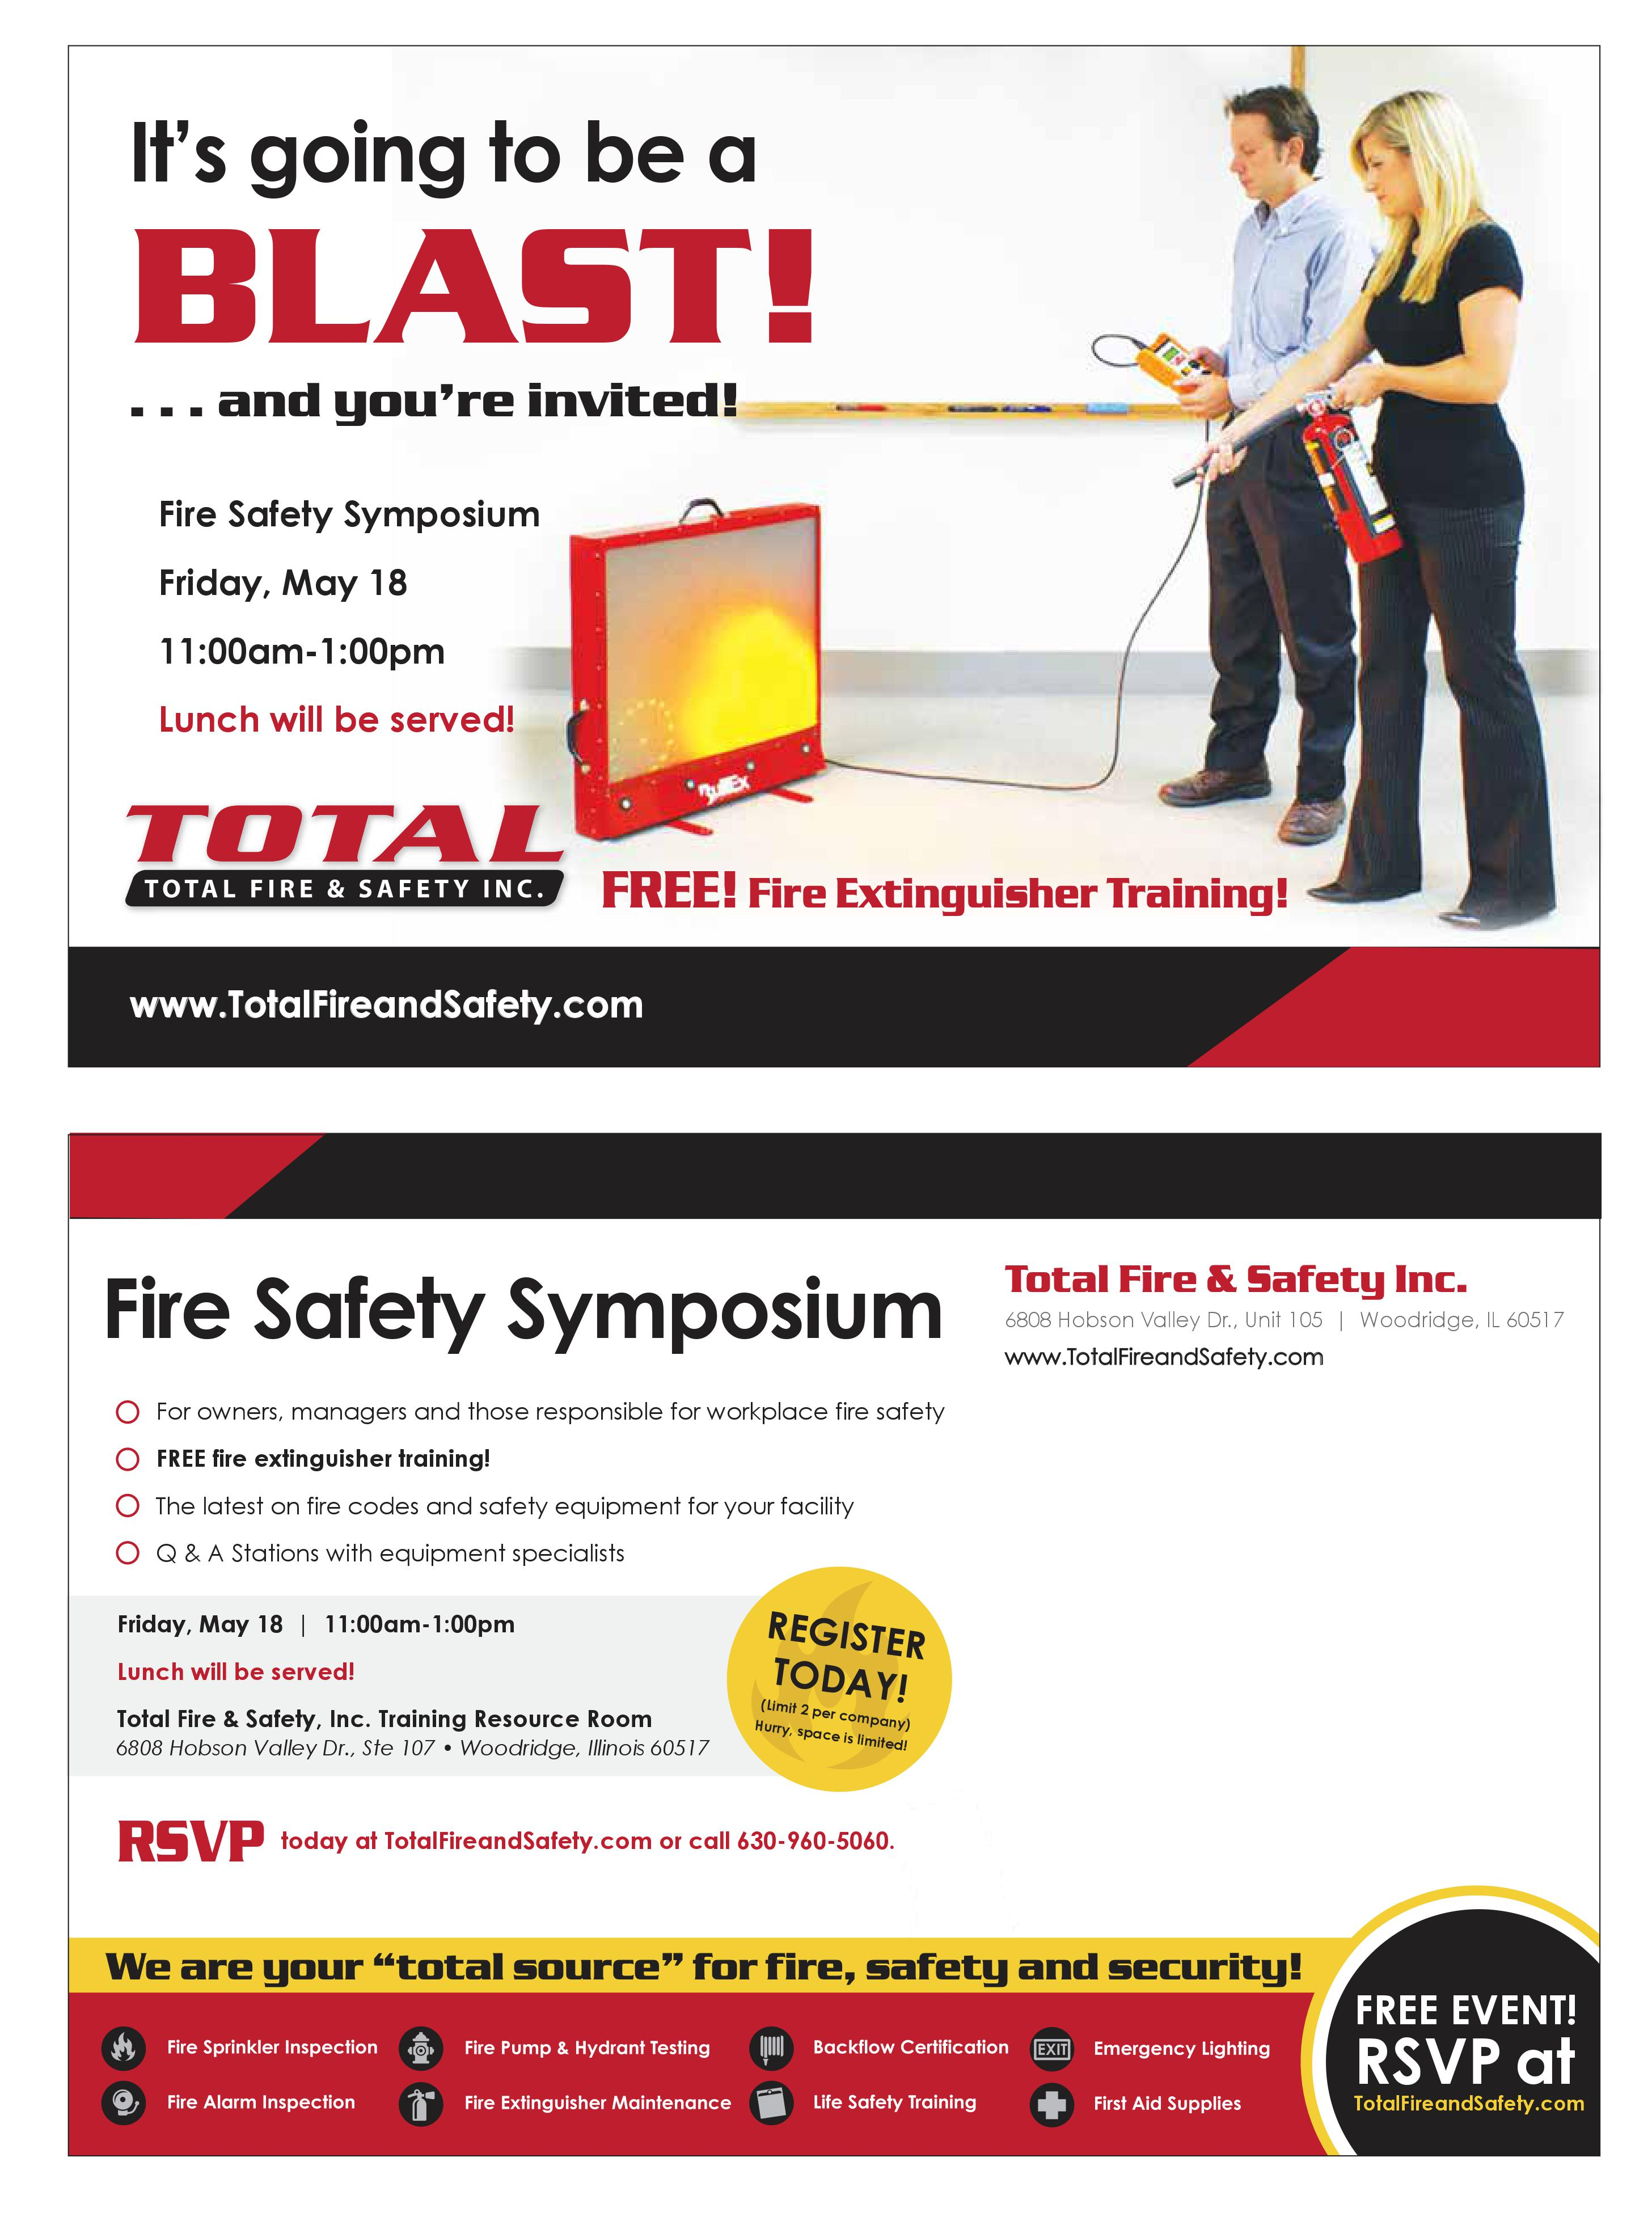 Total Fire & Safety Blog » fire safety